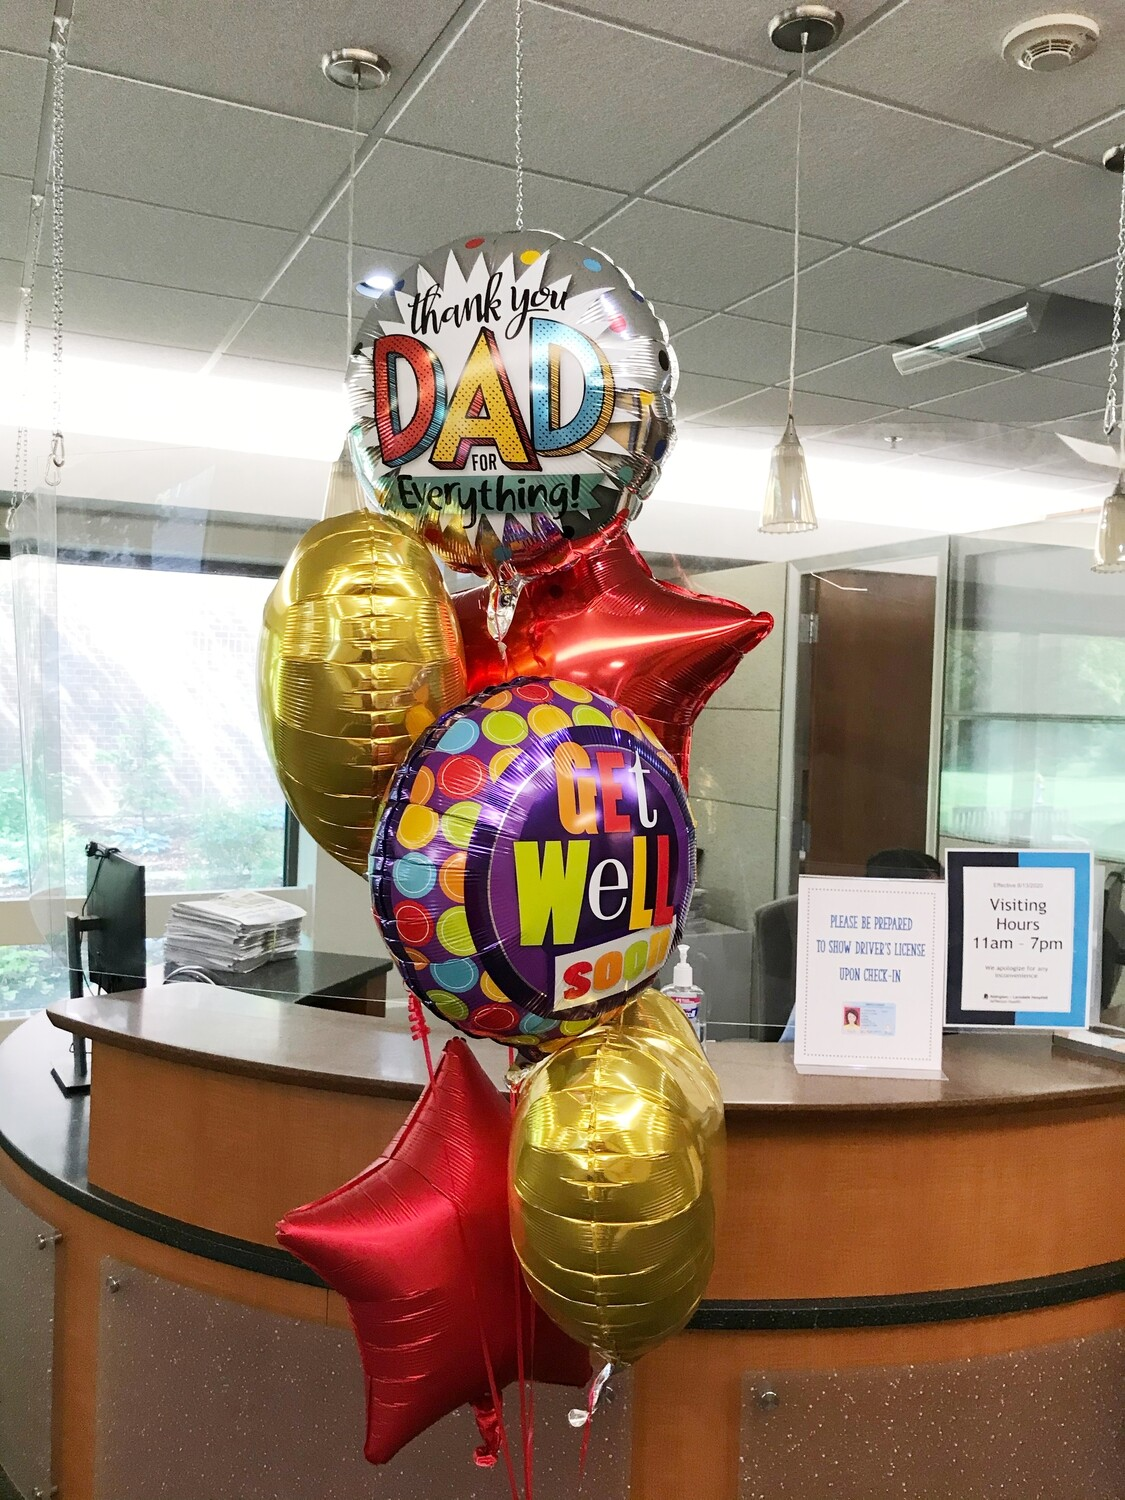 Get well soon custom balloon bouquet on strings with a weight (indoors)